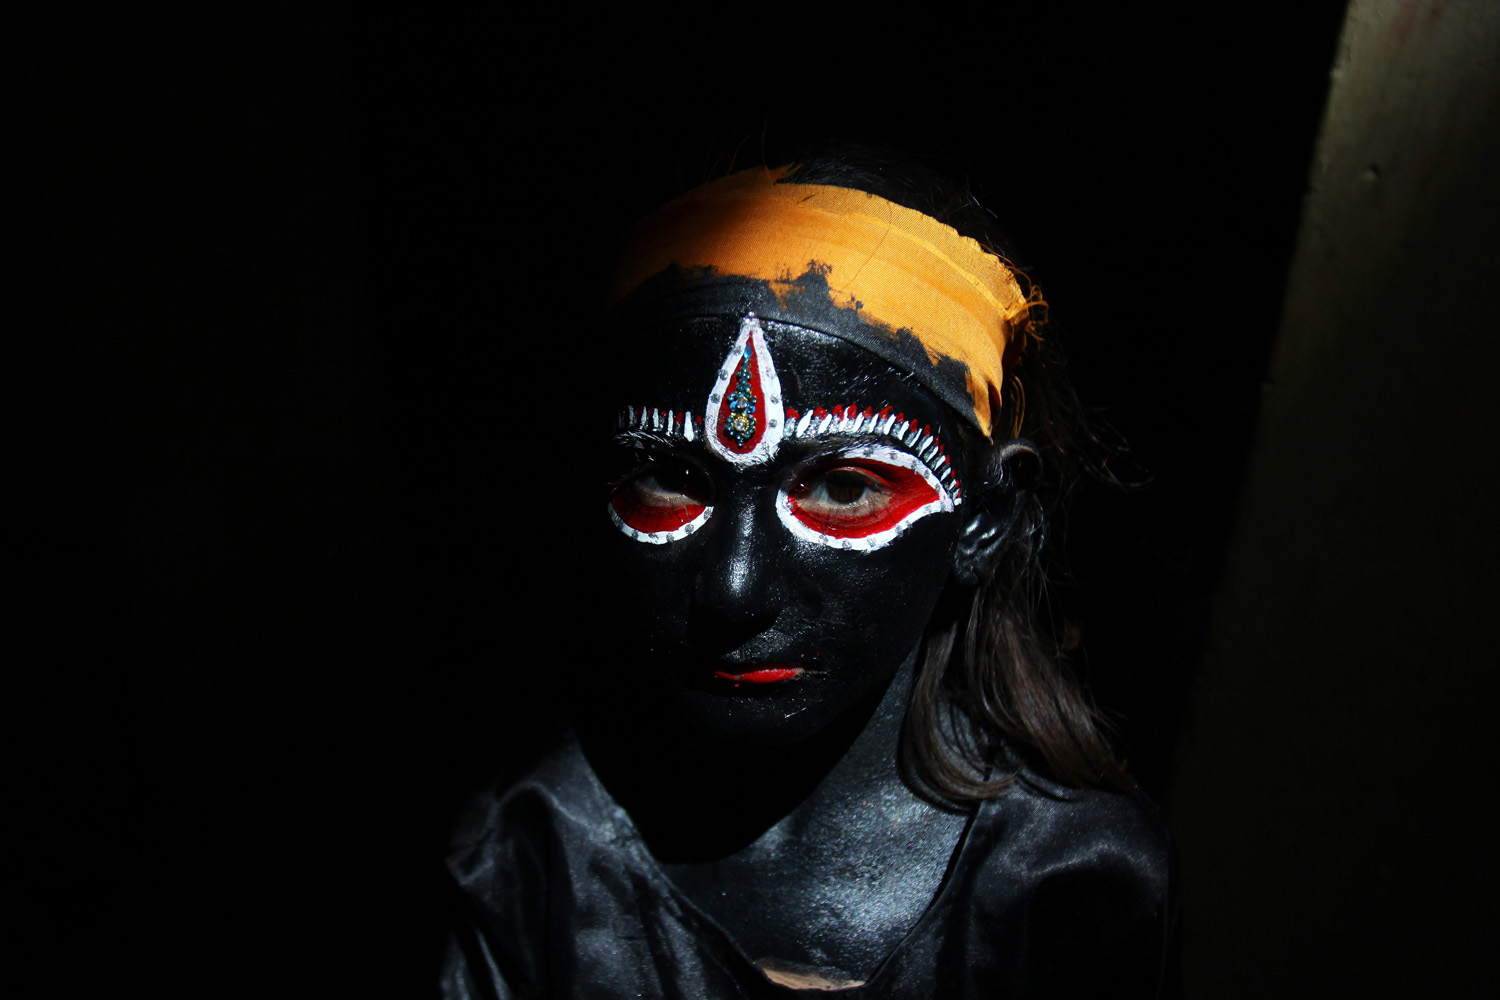 April 19, 2013. An Indian girl dressed as Hindu Goddess, Kali prepares to take part in a religious procession taken out on the occasion of Ramnavmi festival in Amritsar, India. The festival commemorates the birth of Hindu God Lord Rama.